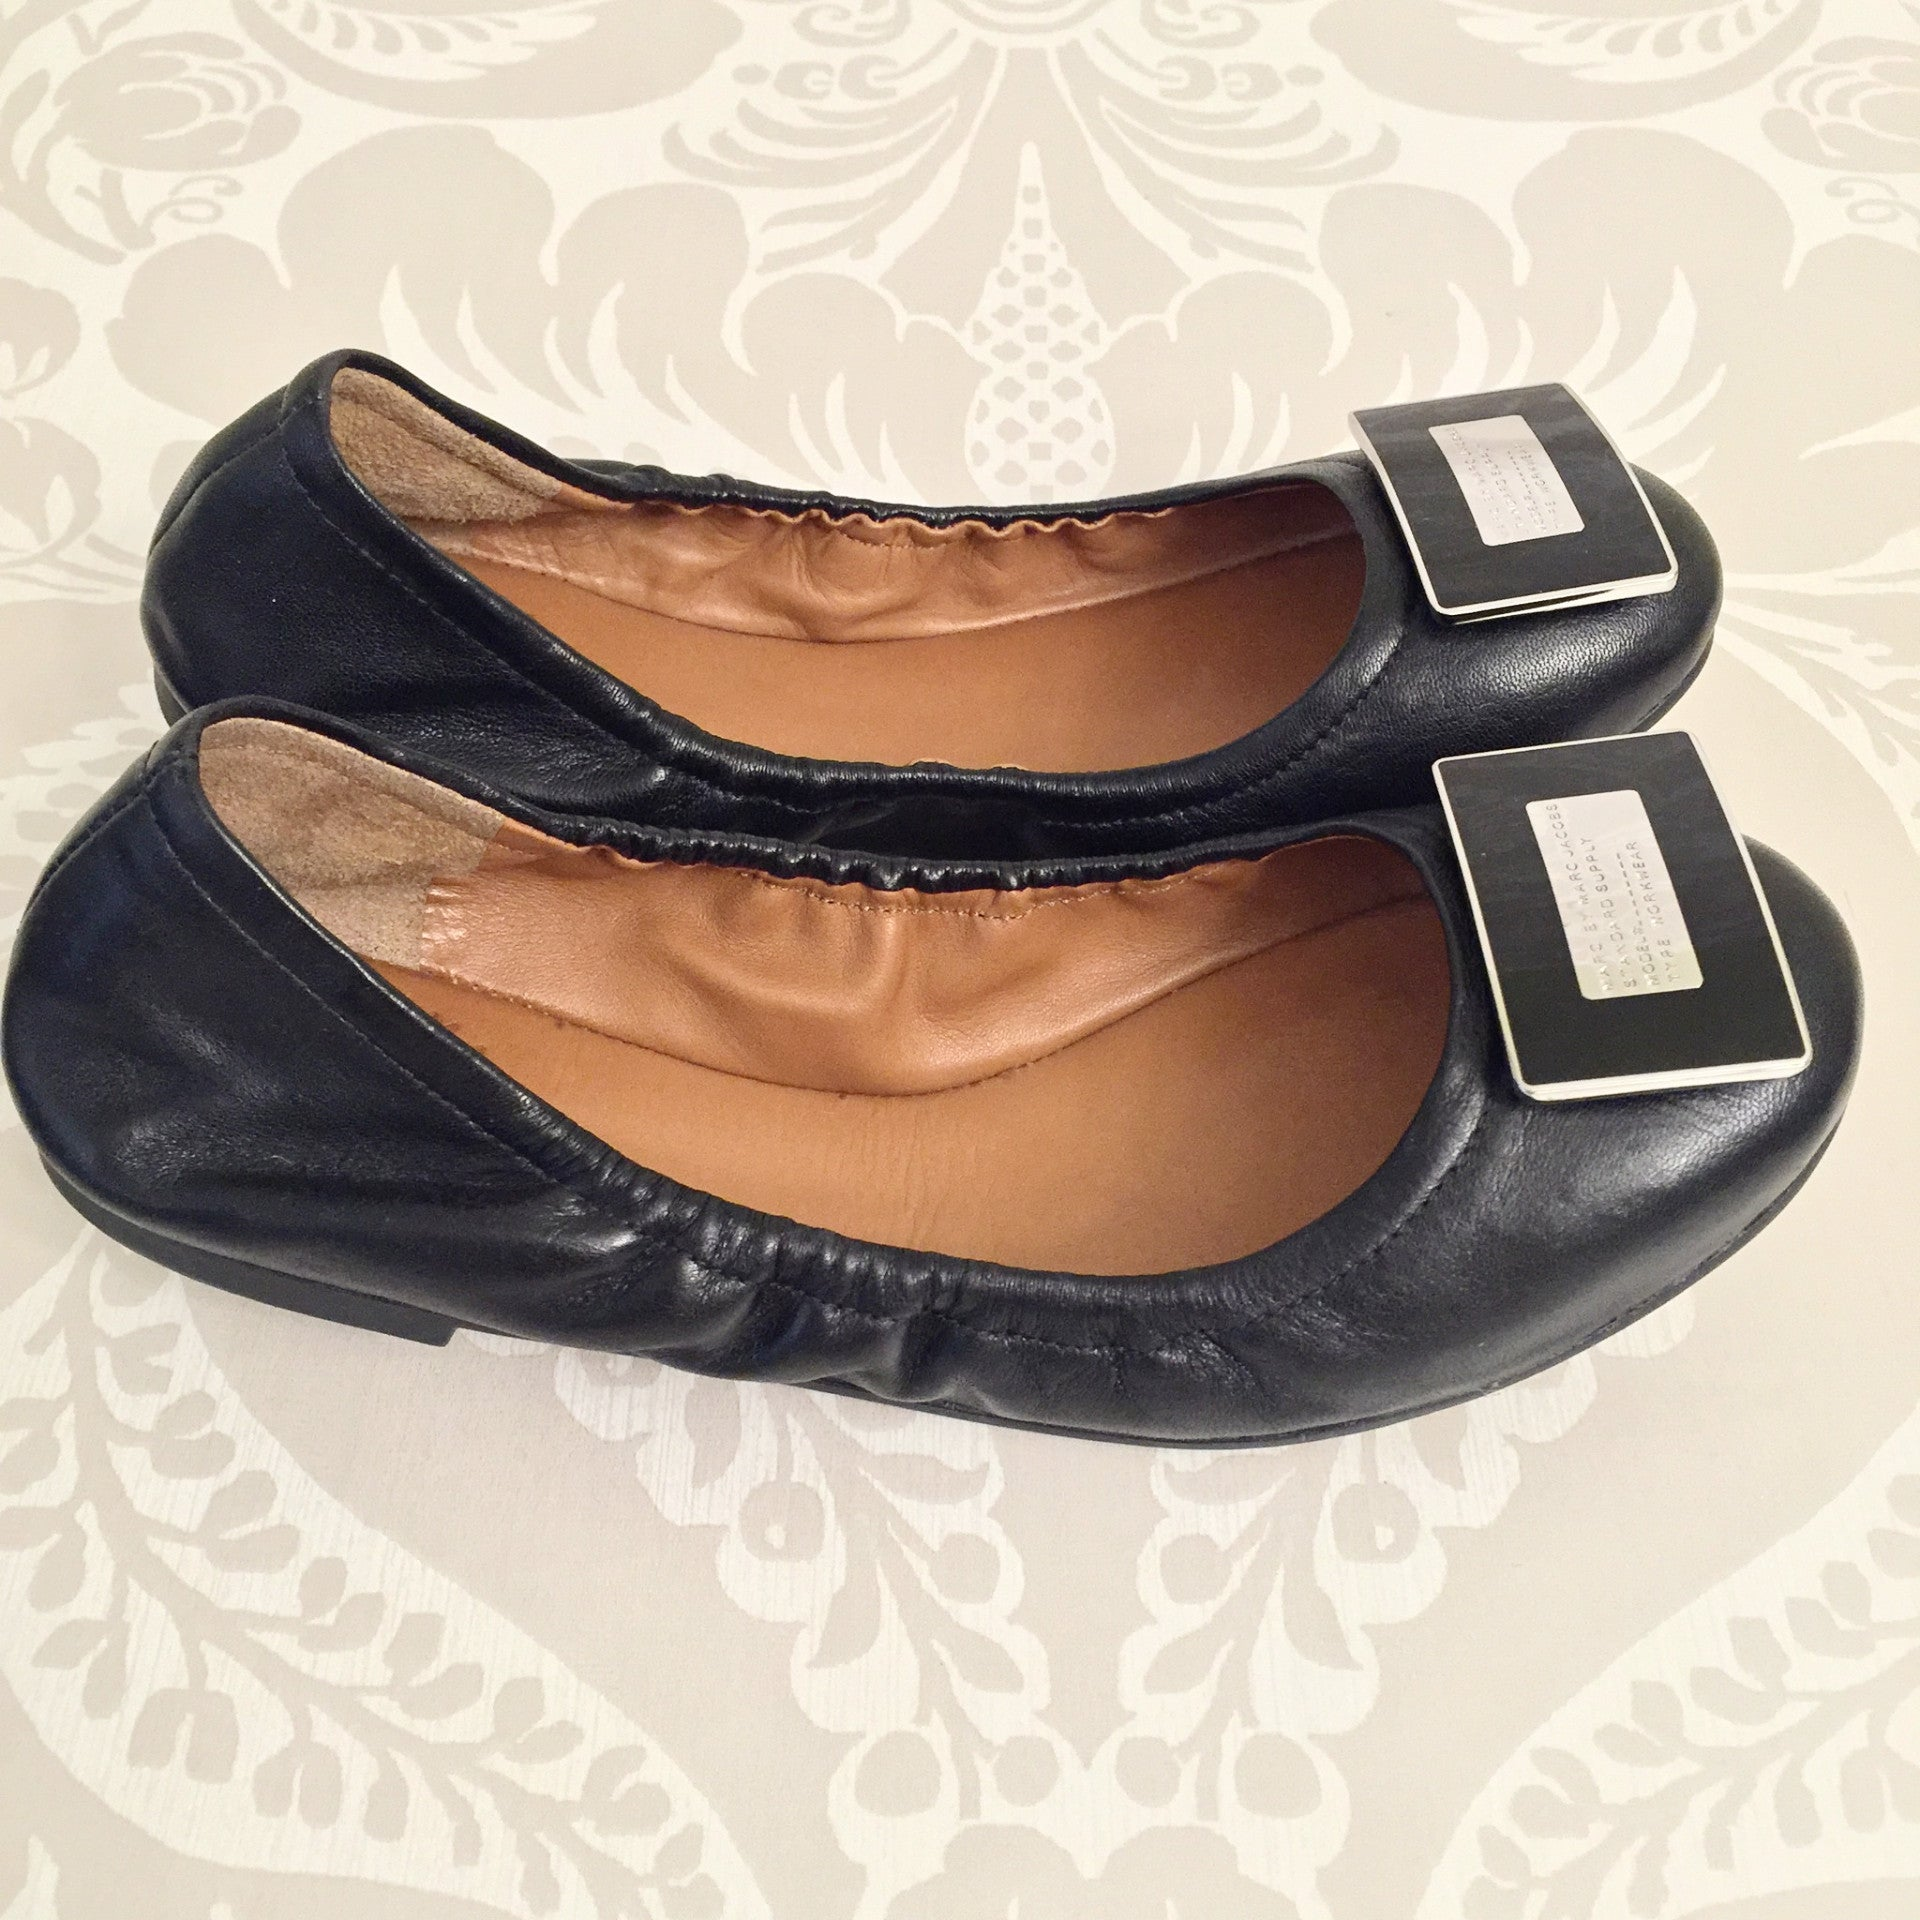 Authentic Marc by Marc Jacobs Black Ballet Size 35.5